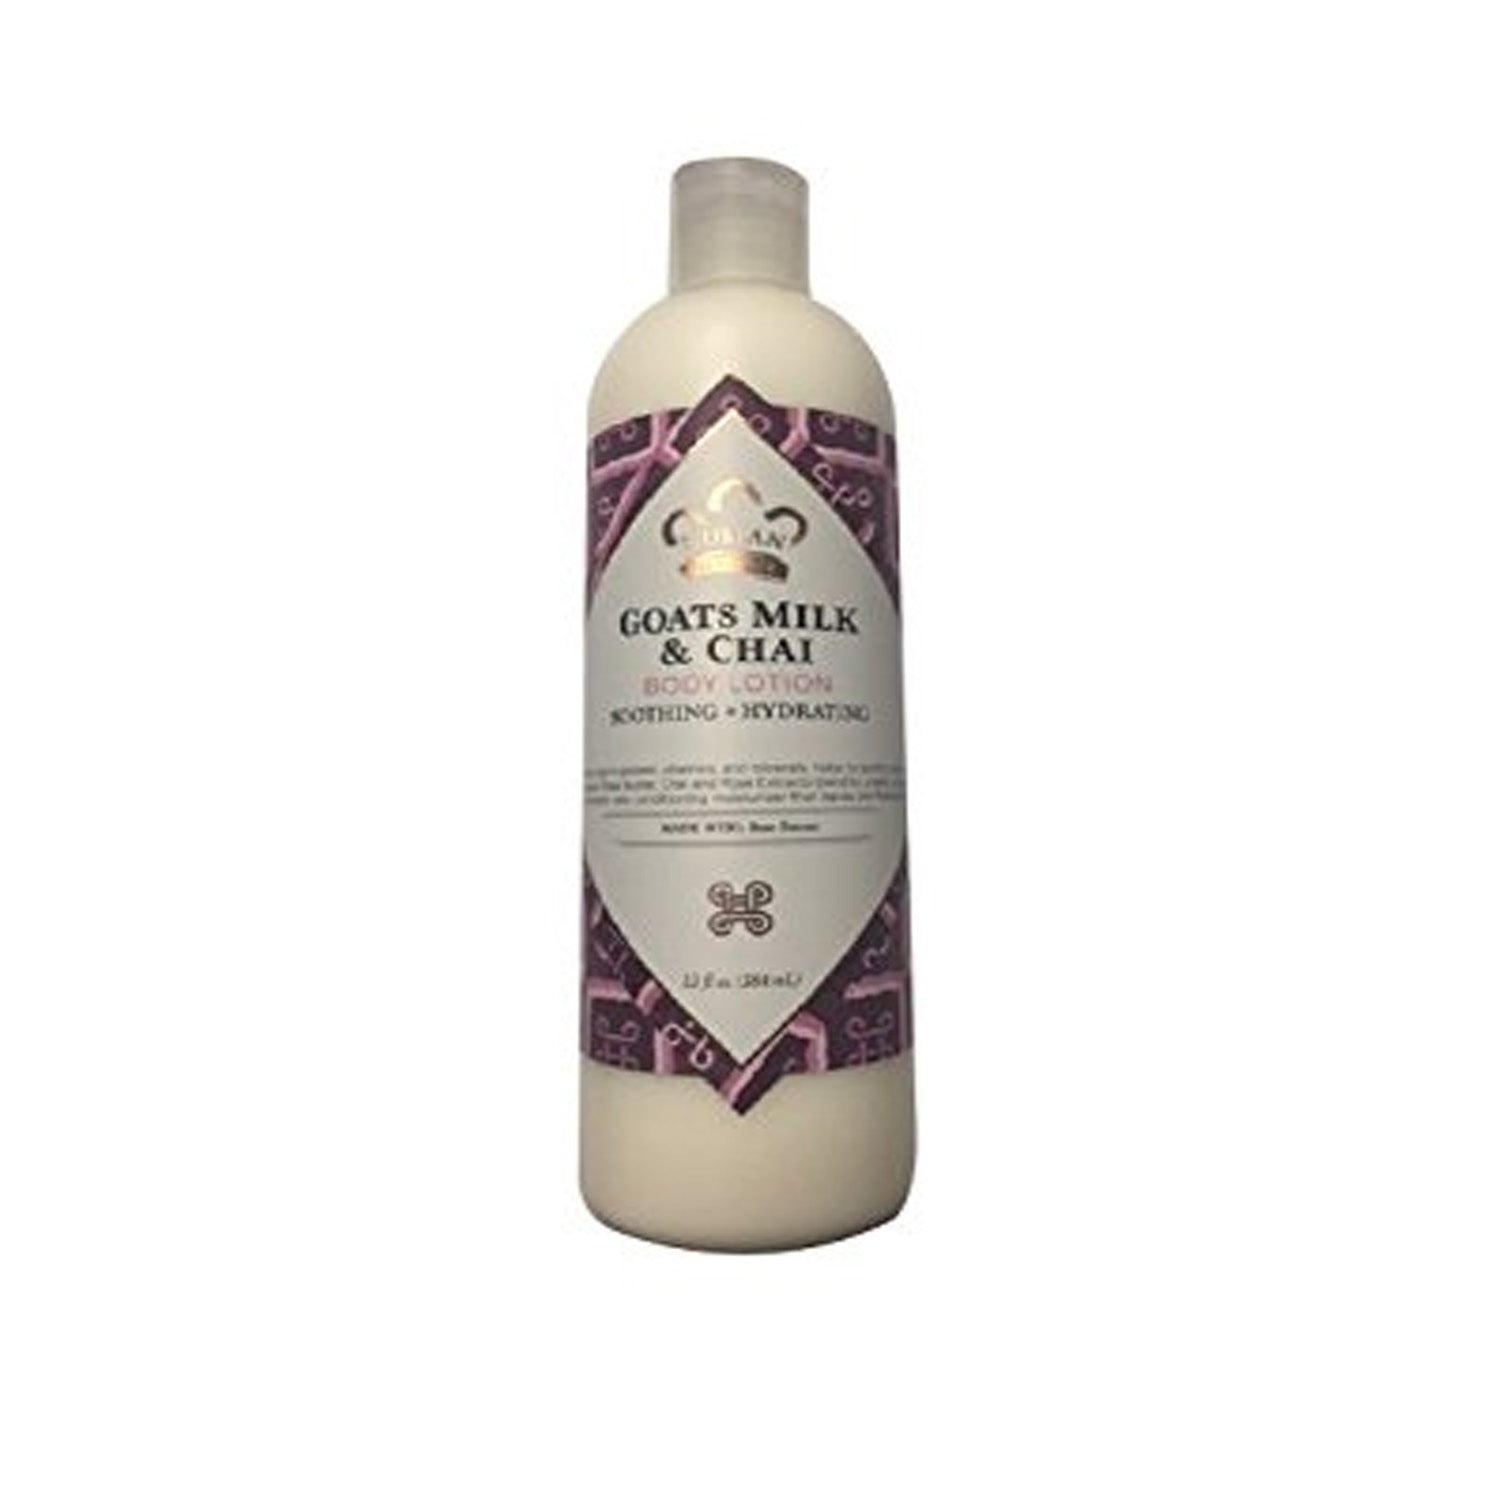 Nubian Heritage Body Lotion Goat's Milk And Chai 13 Oz